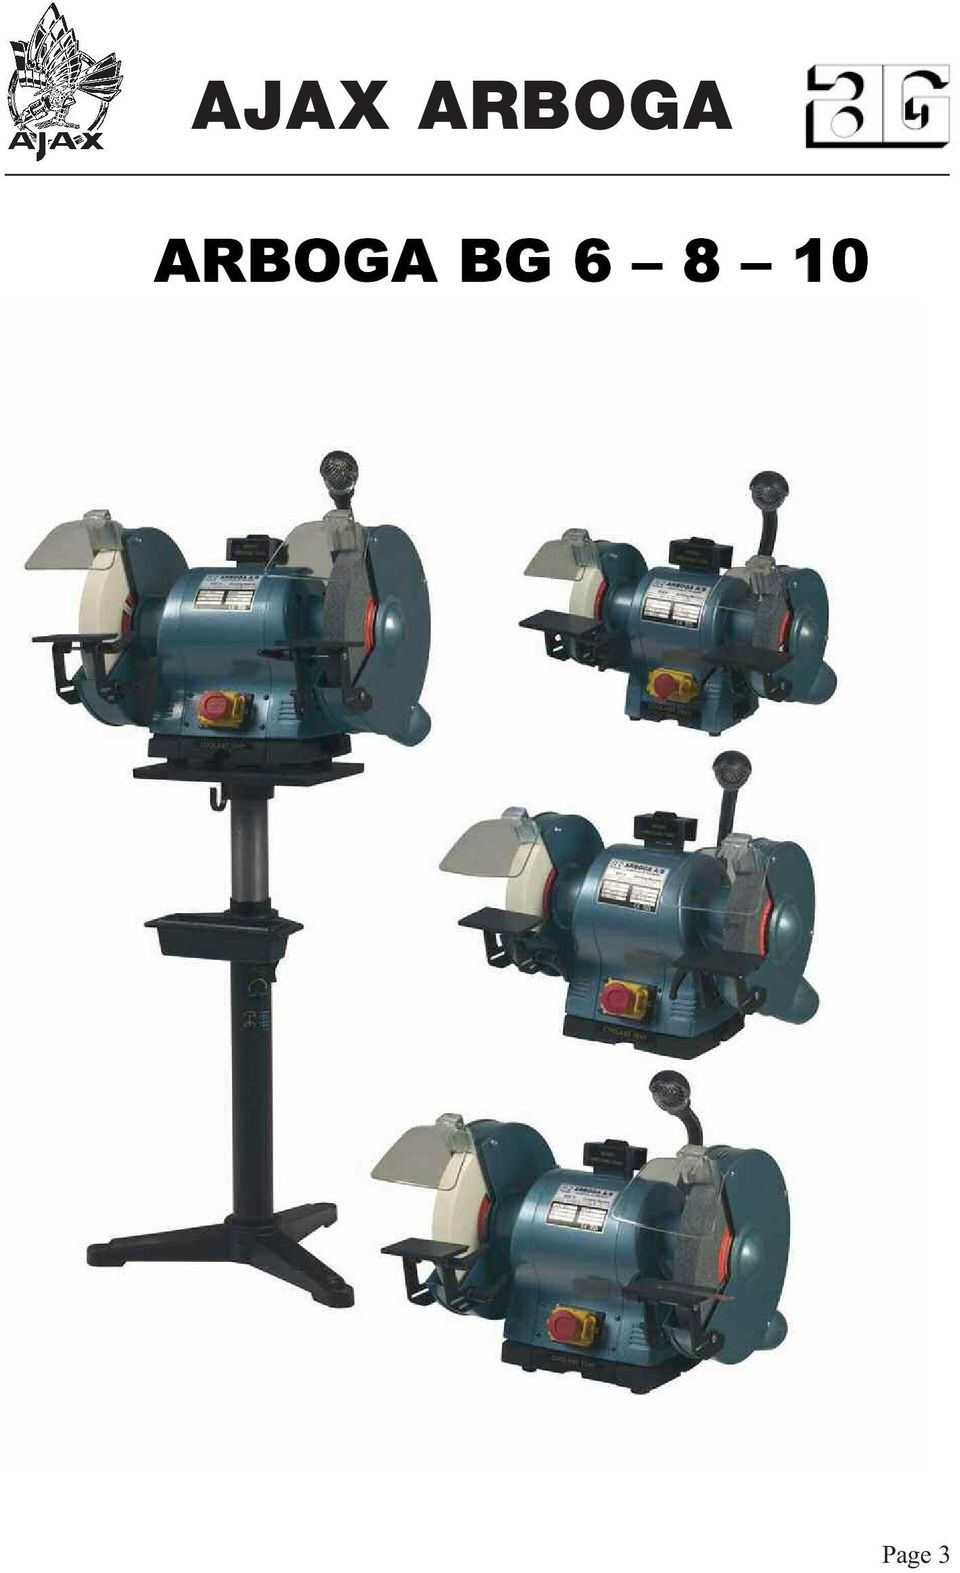 Ajax Arboga Pdf. 4 The Arboga Bg Double Ended Grinders And Polishers Are High Quality Machines Ideal For Workshop They Available As Bench Height Adjustable. Wiring. Br Tool Bench Grinder Wiring Diagram At Scoala.co